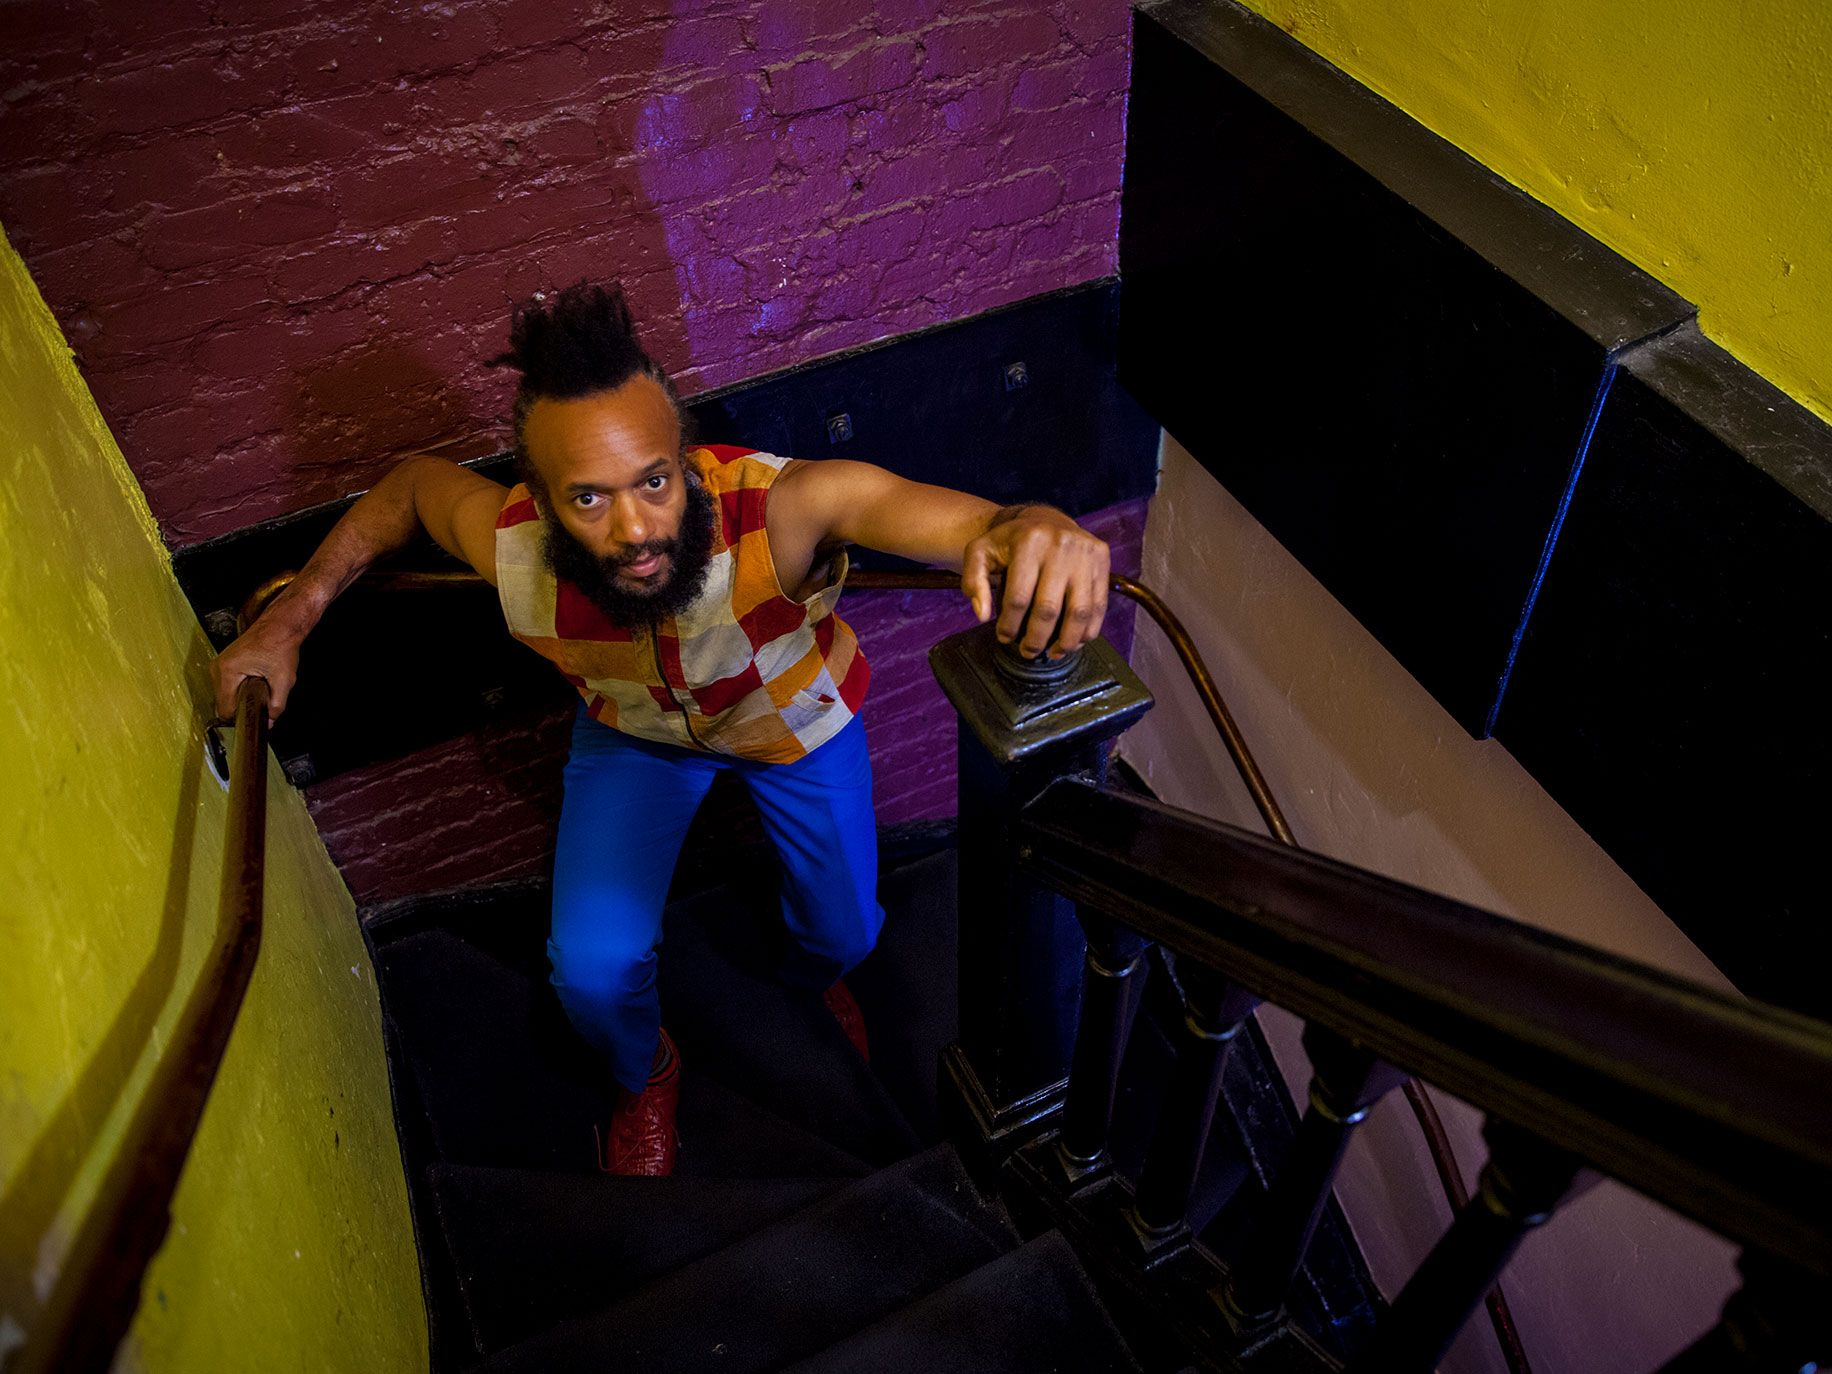 Fantastic Negrito backstage at The Fillmore in San Francisco.